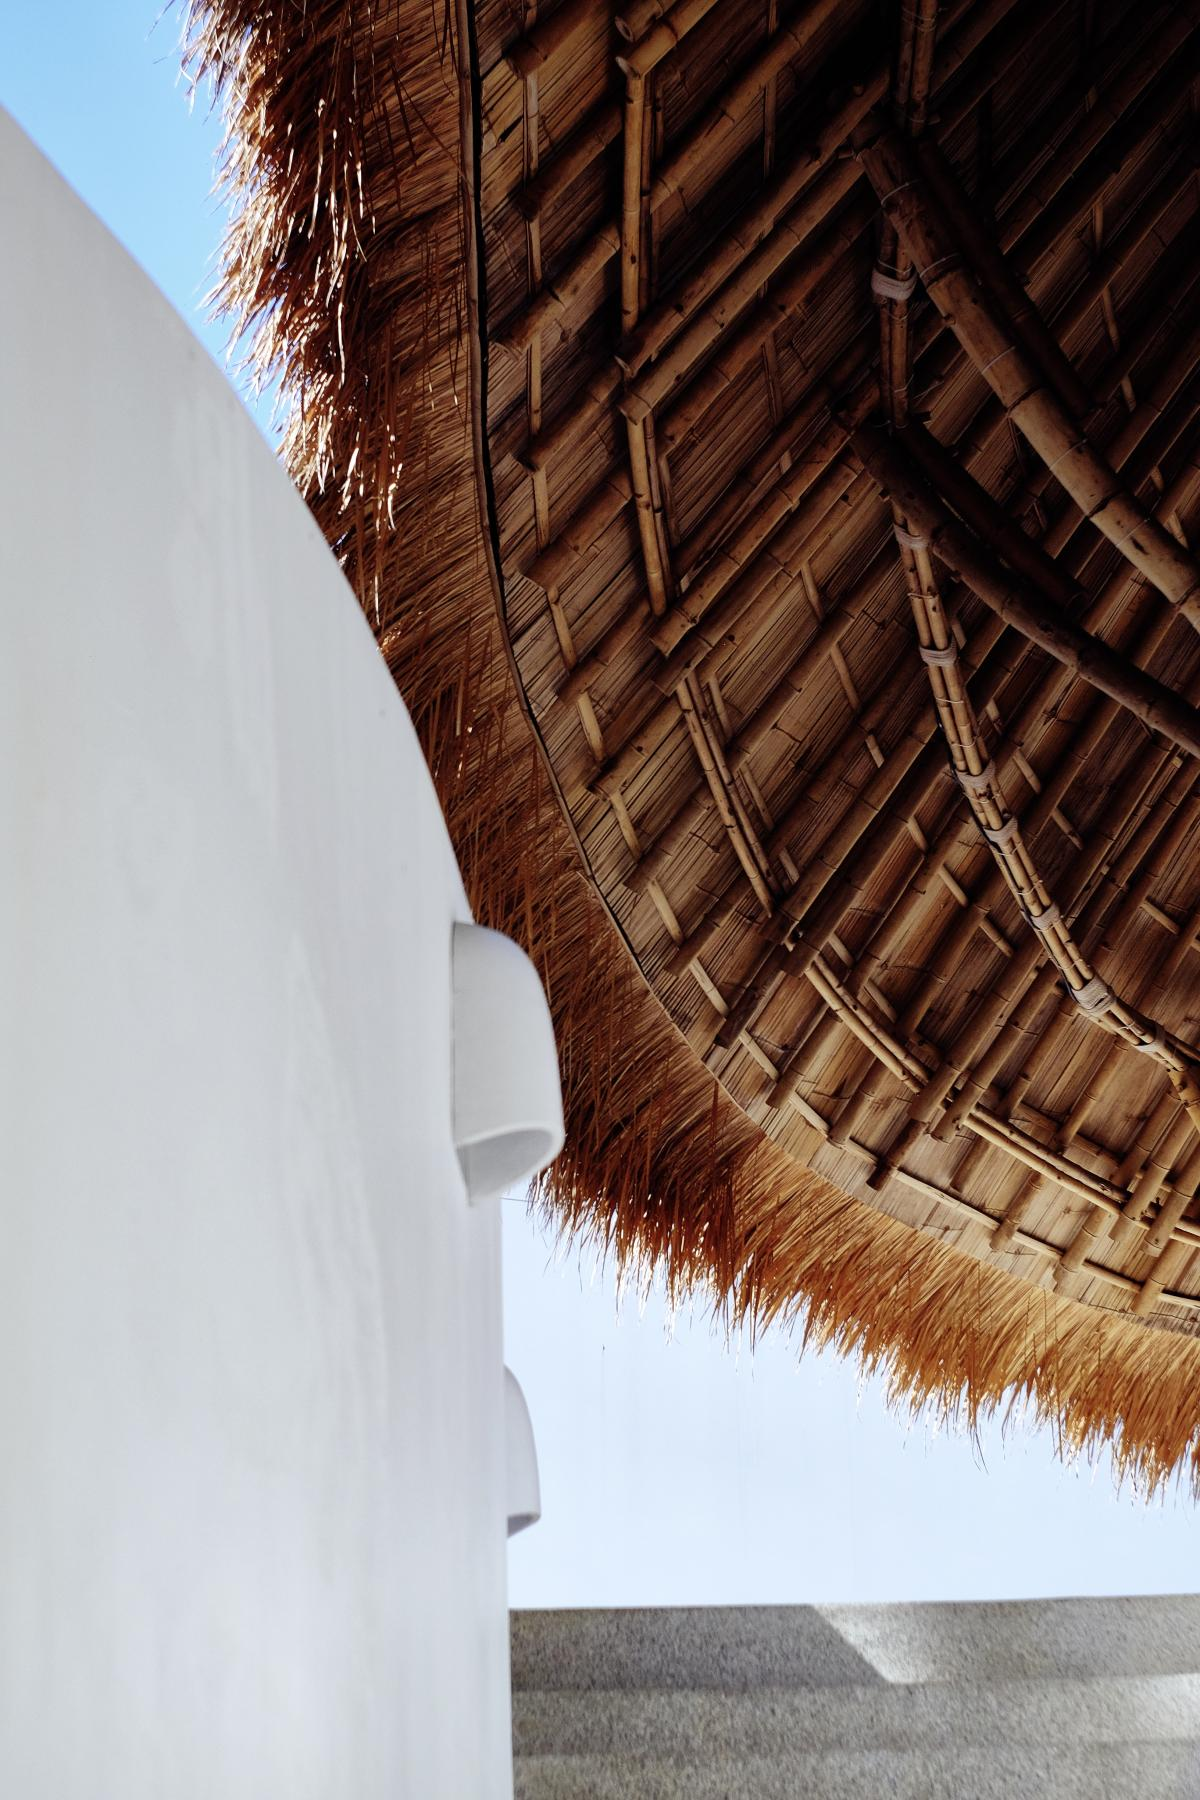 Thatch Roof Protective covering